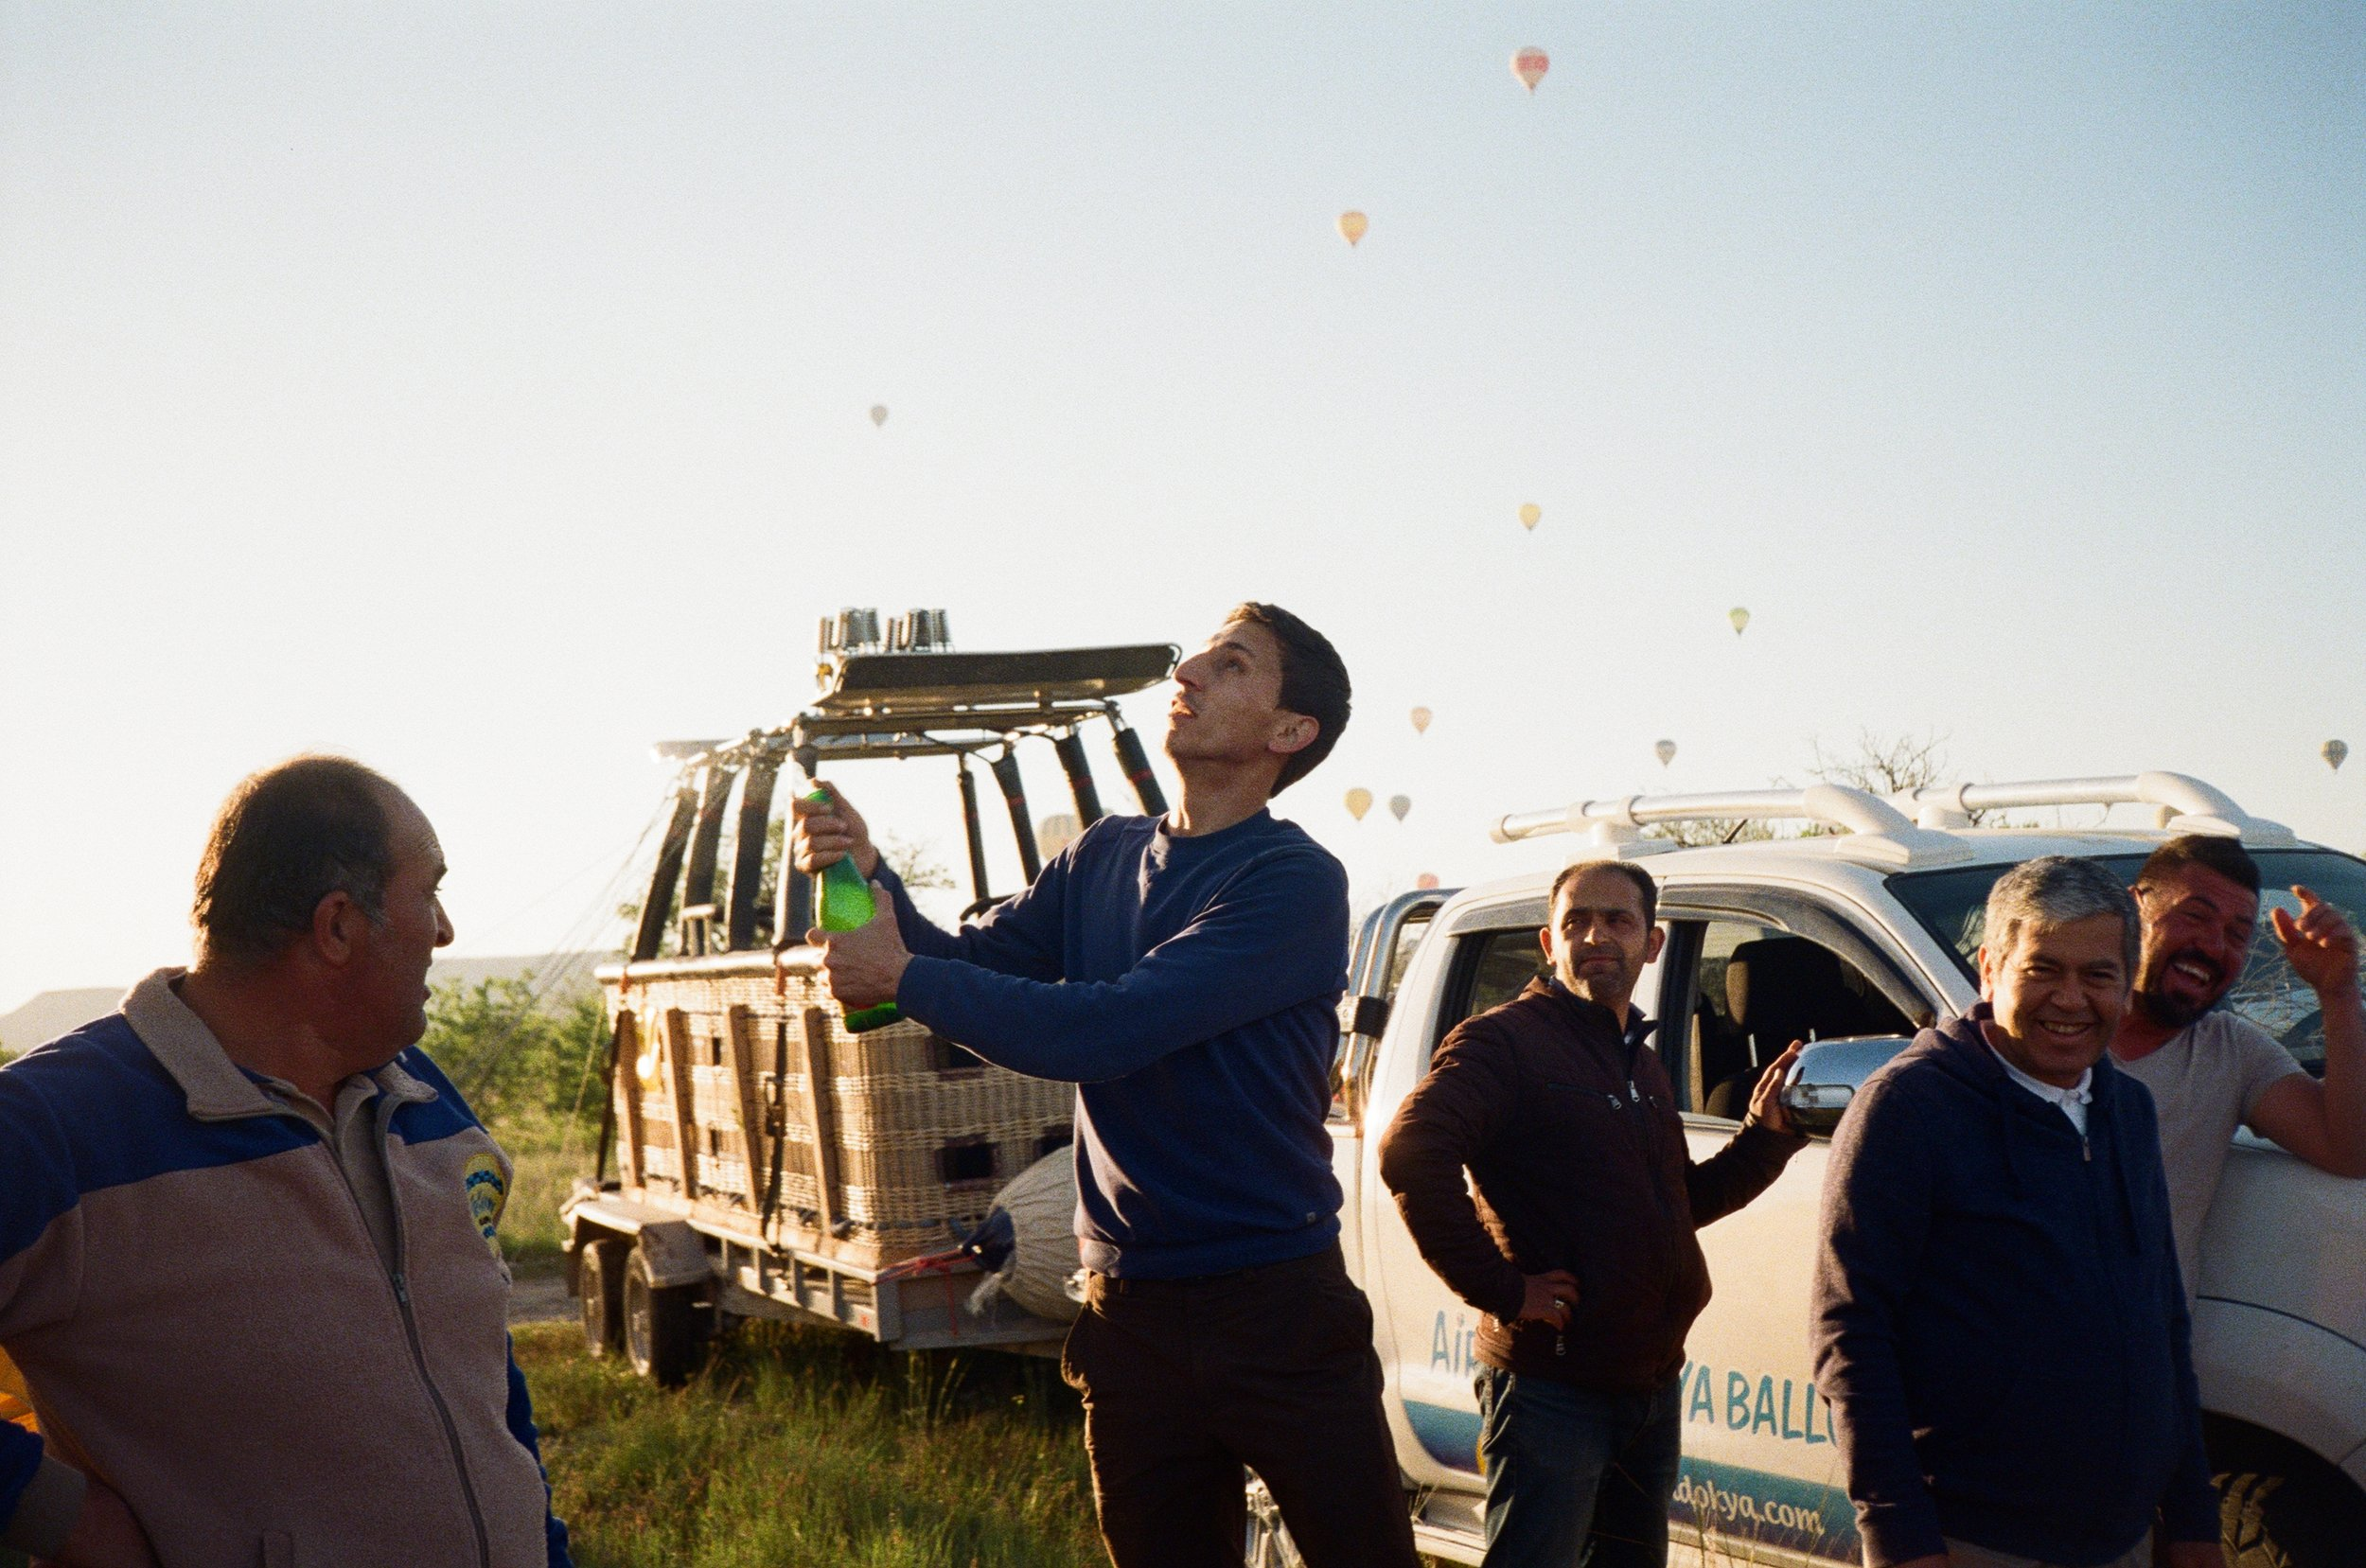 Celebratory flight success champagne toast with our hot air balloon pilot/team in 35mm